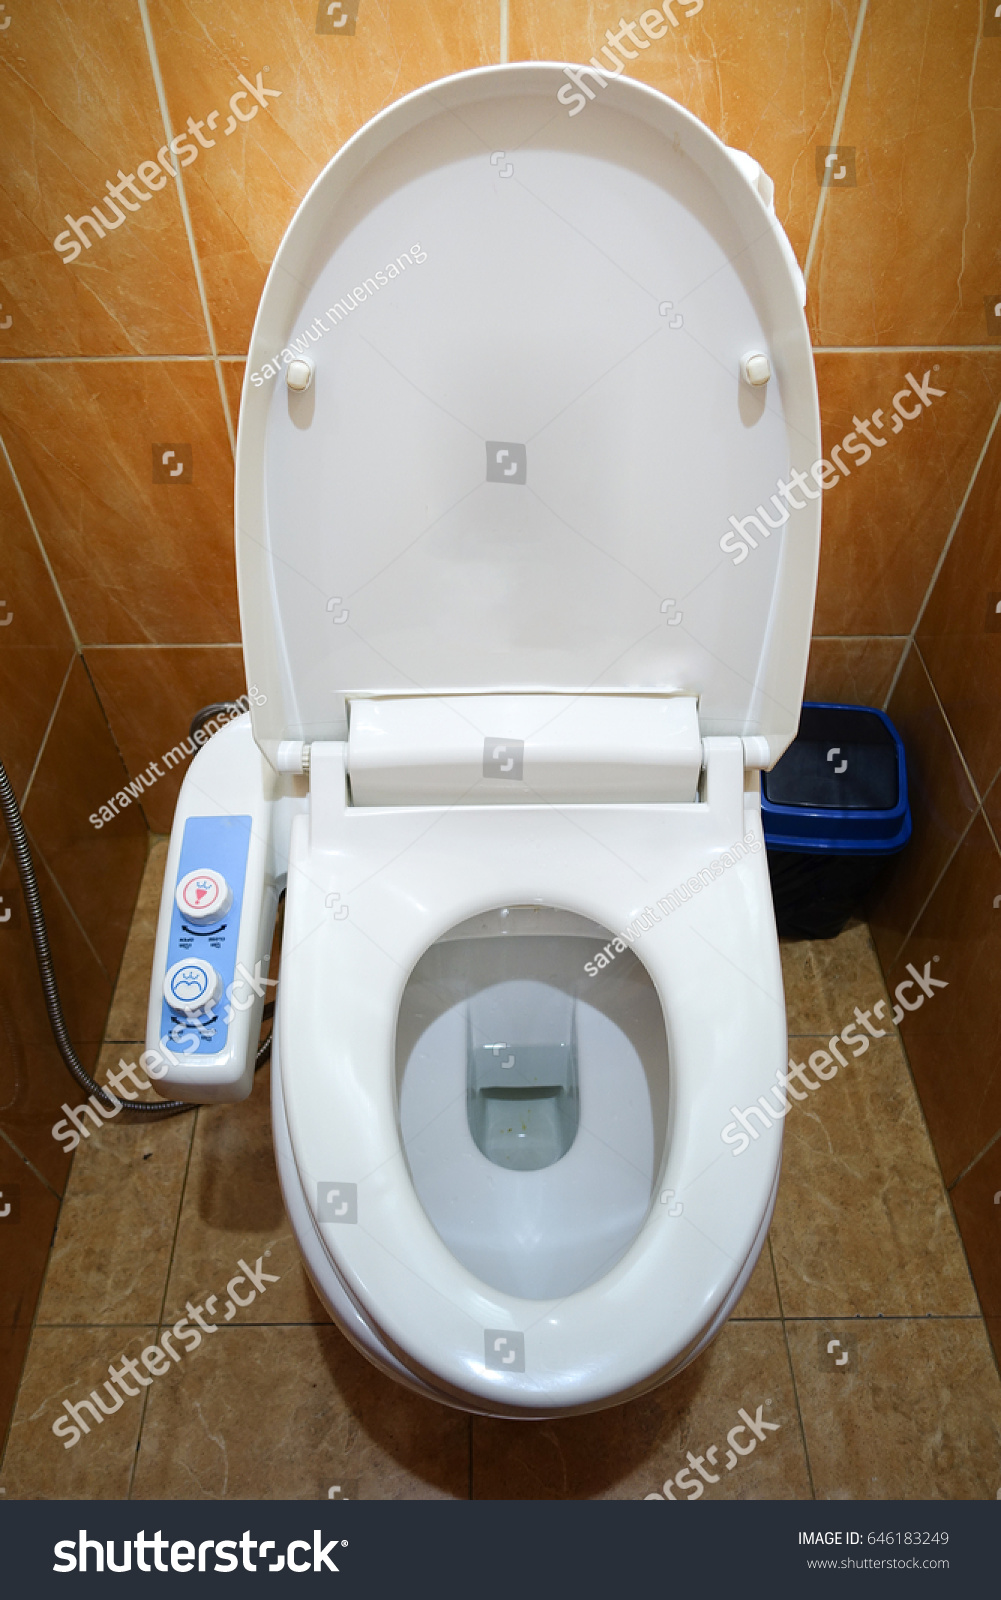 Japanese Hightech Modern Toilet Stock Photo (Edit Now) 646183249 ...